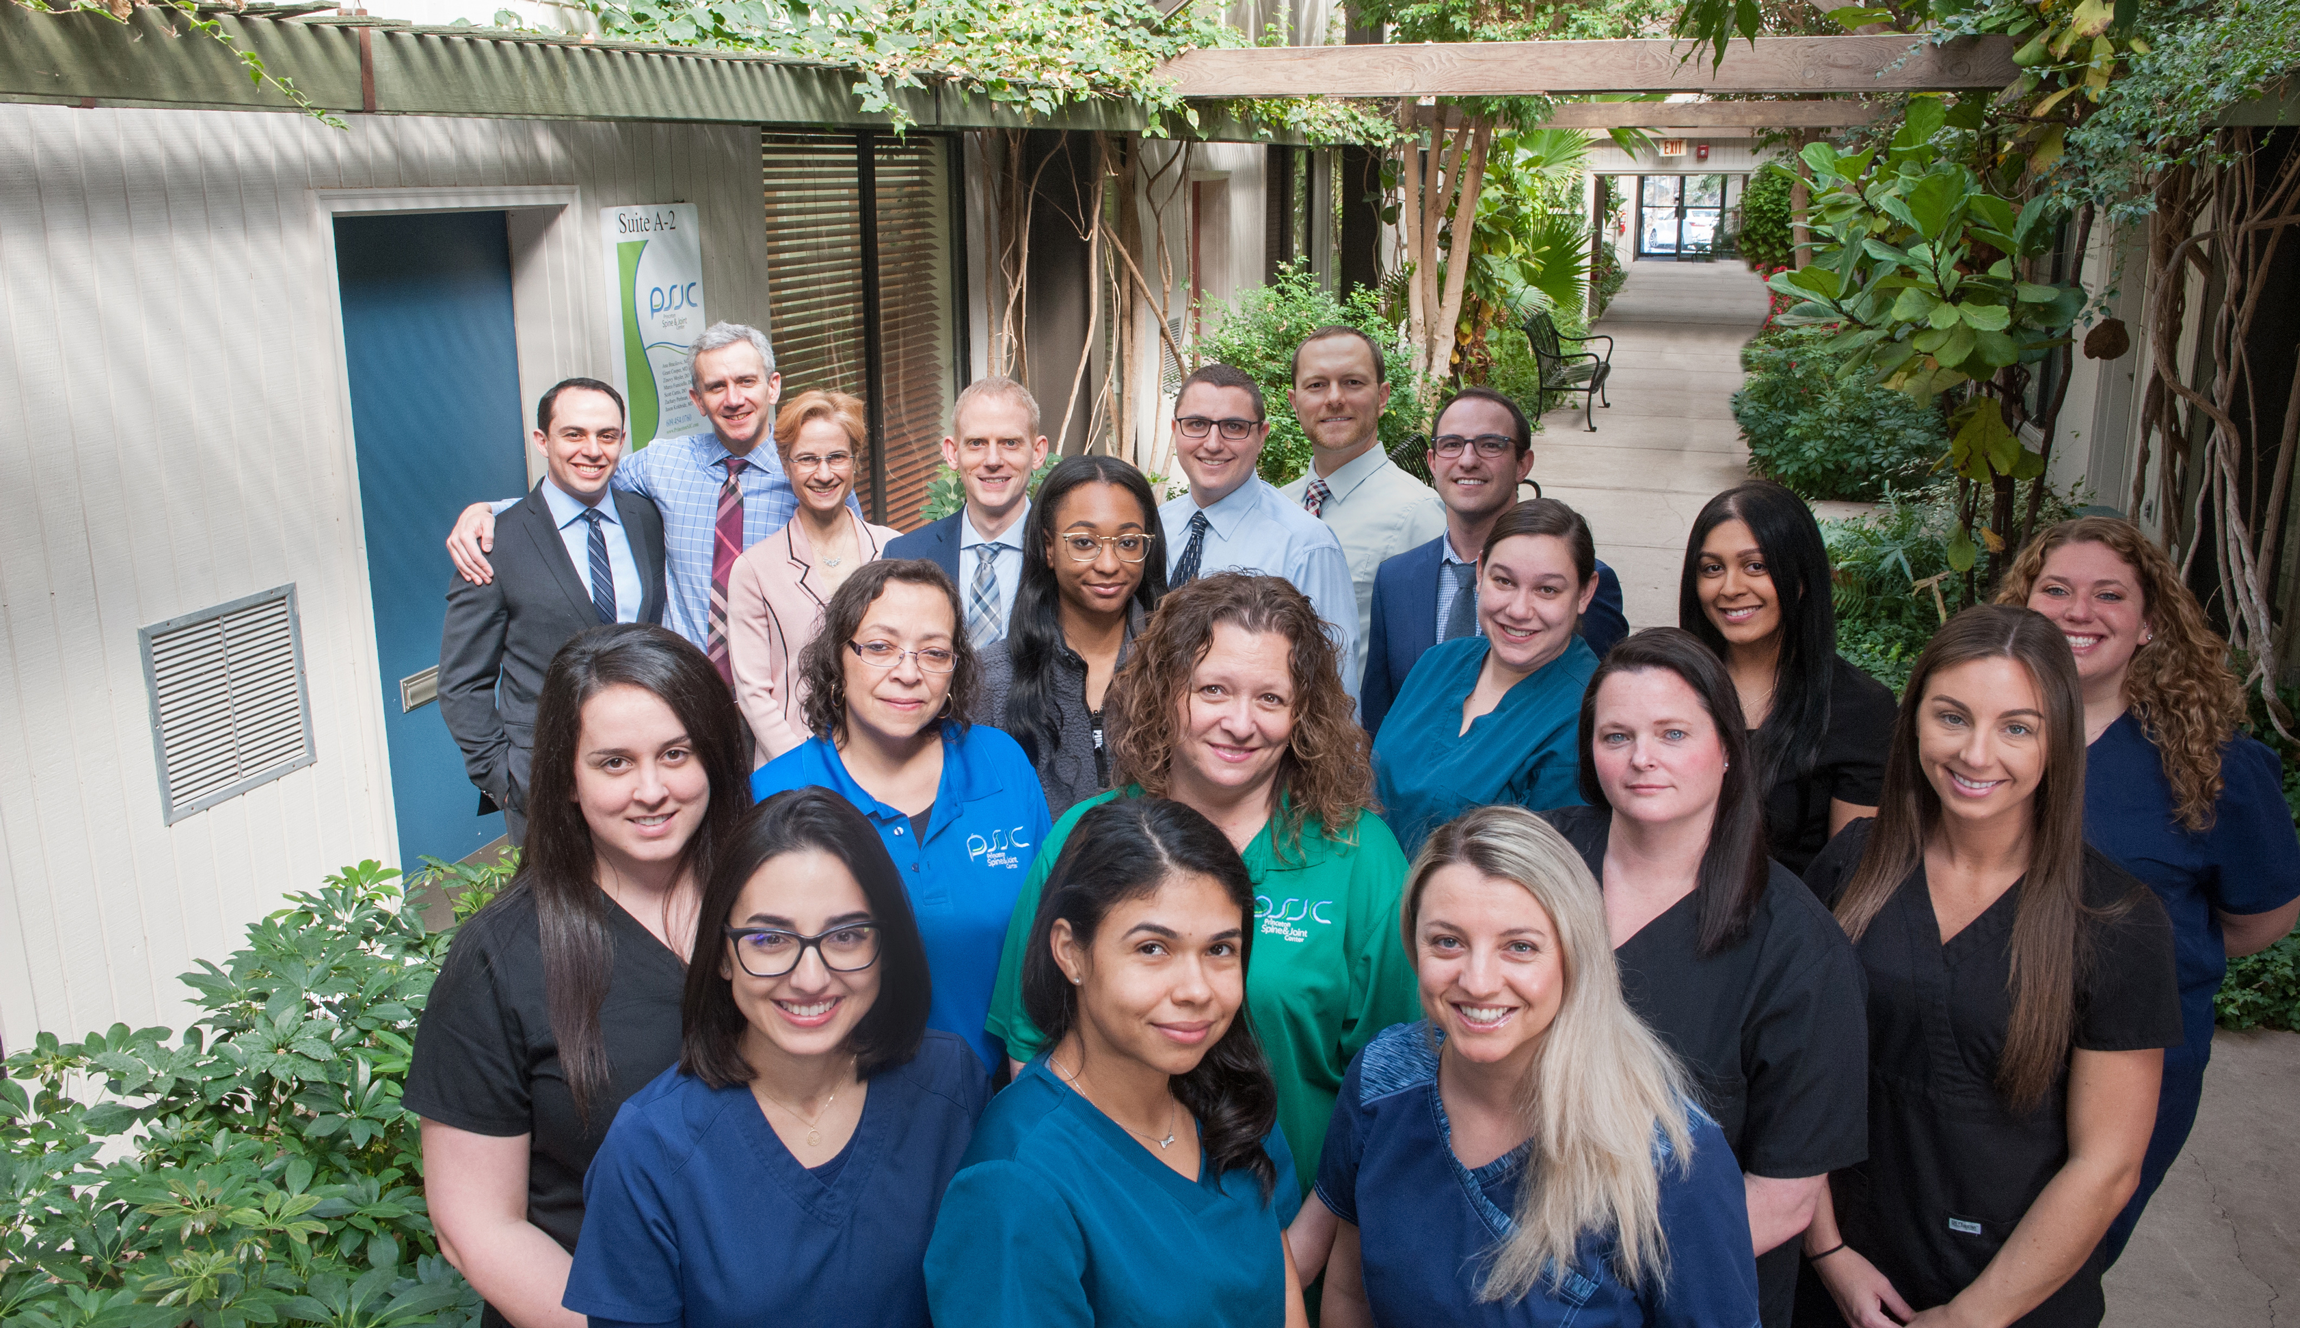 The Princeton Spine and Joint Center Staff and Doctors